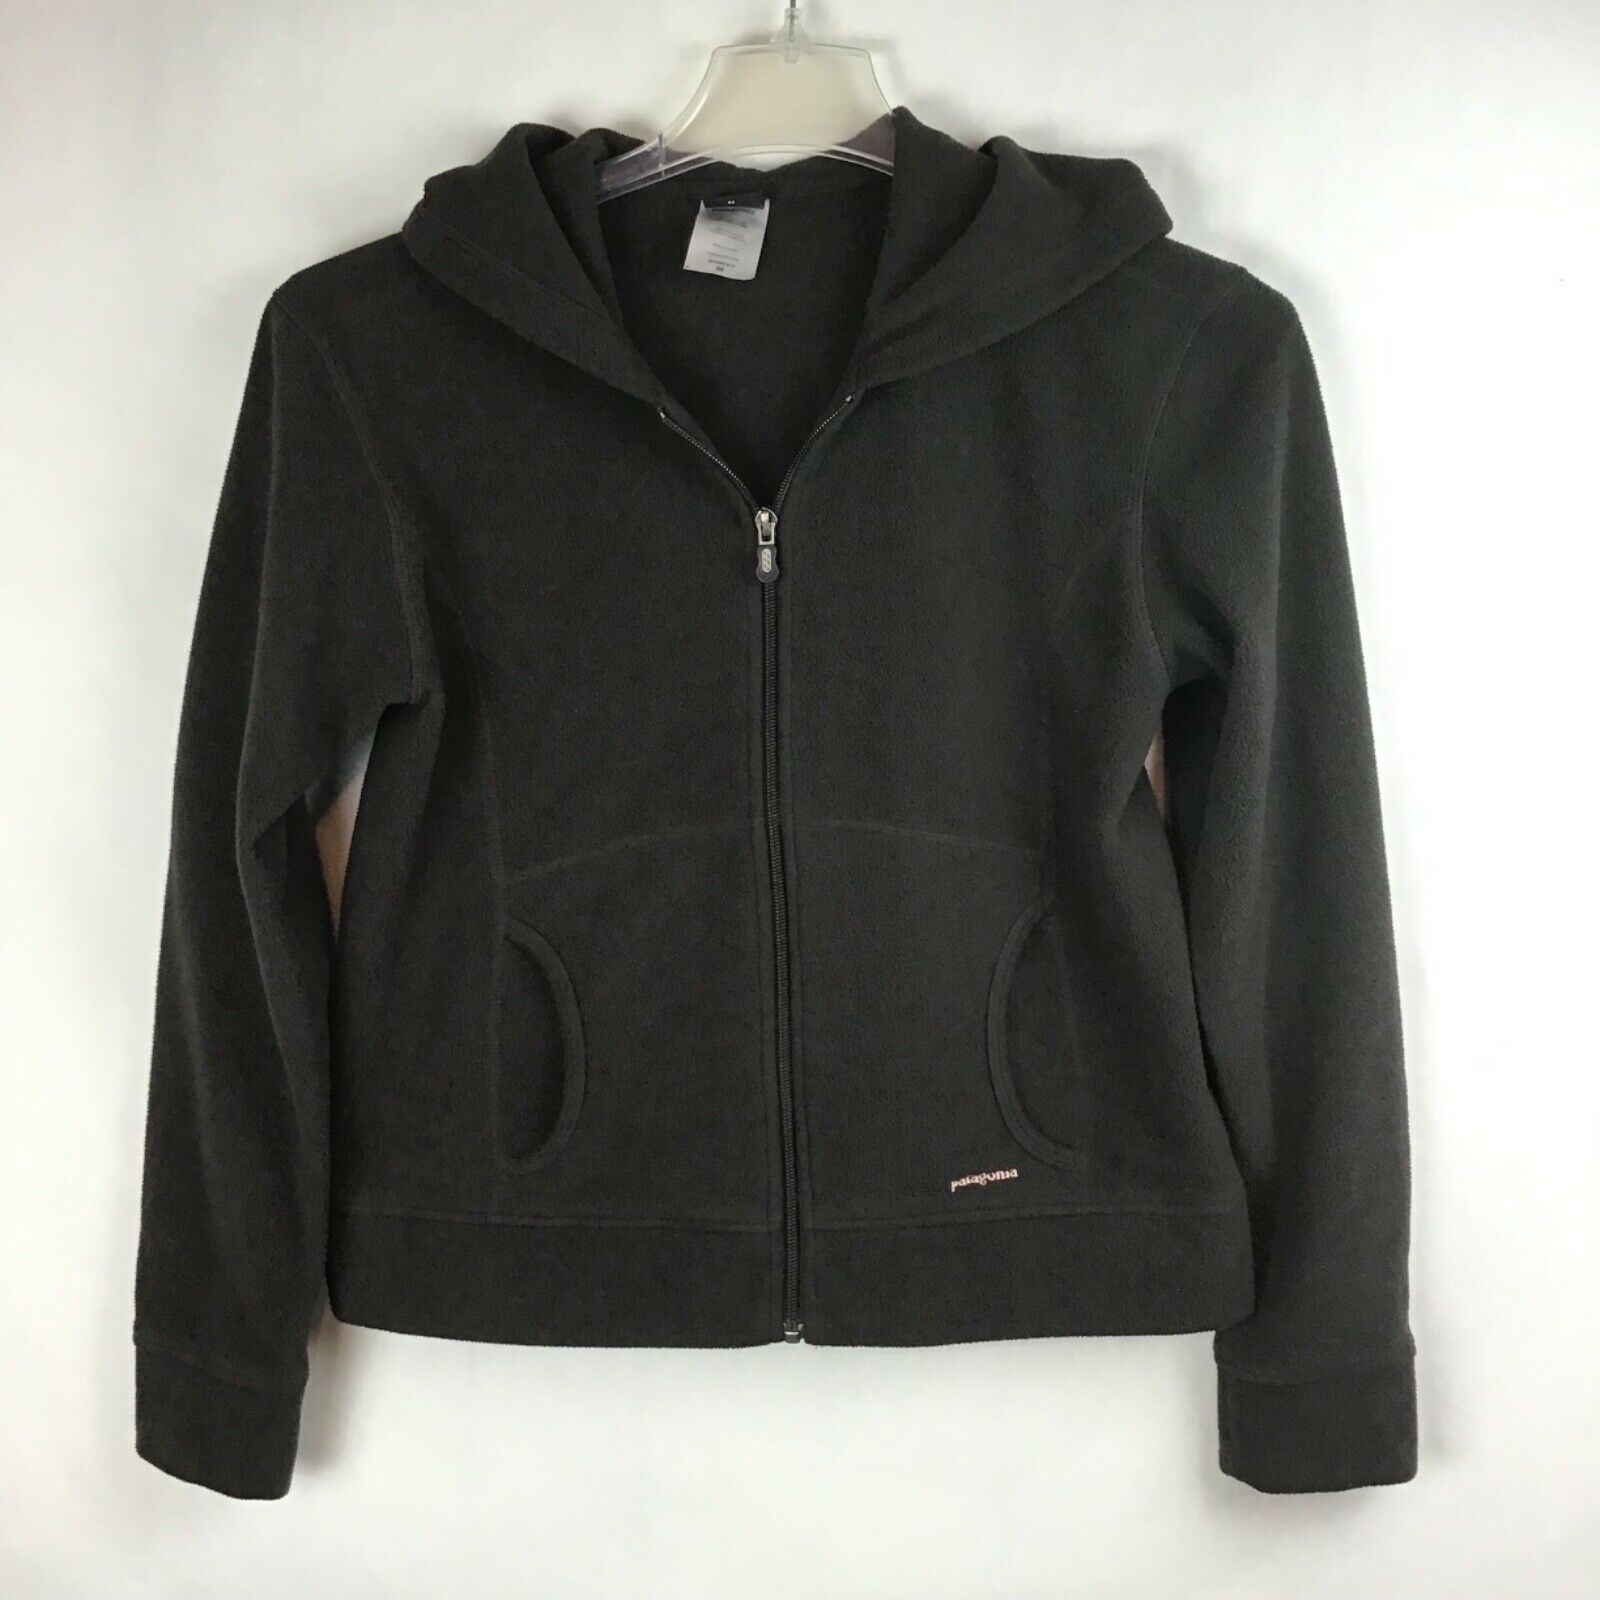 Patagonia Womens Size M Jacket Fleece Fiull Zip Long Sleeve Athleisure A32-4